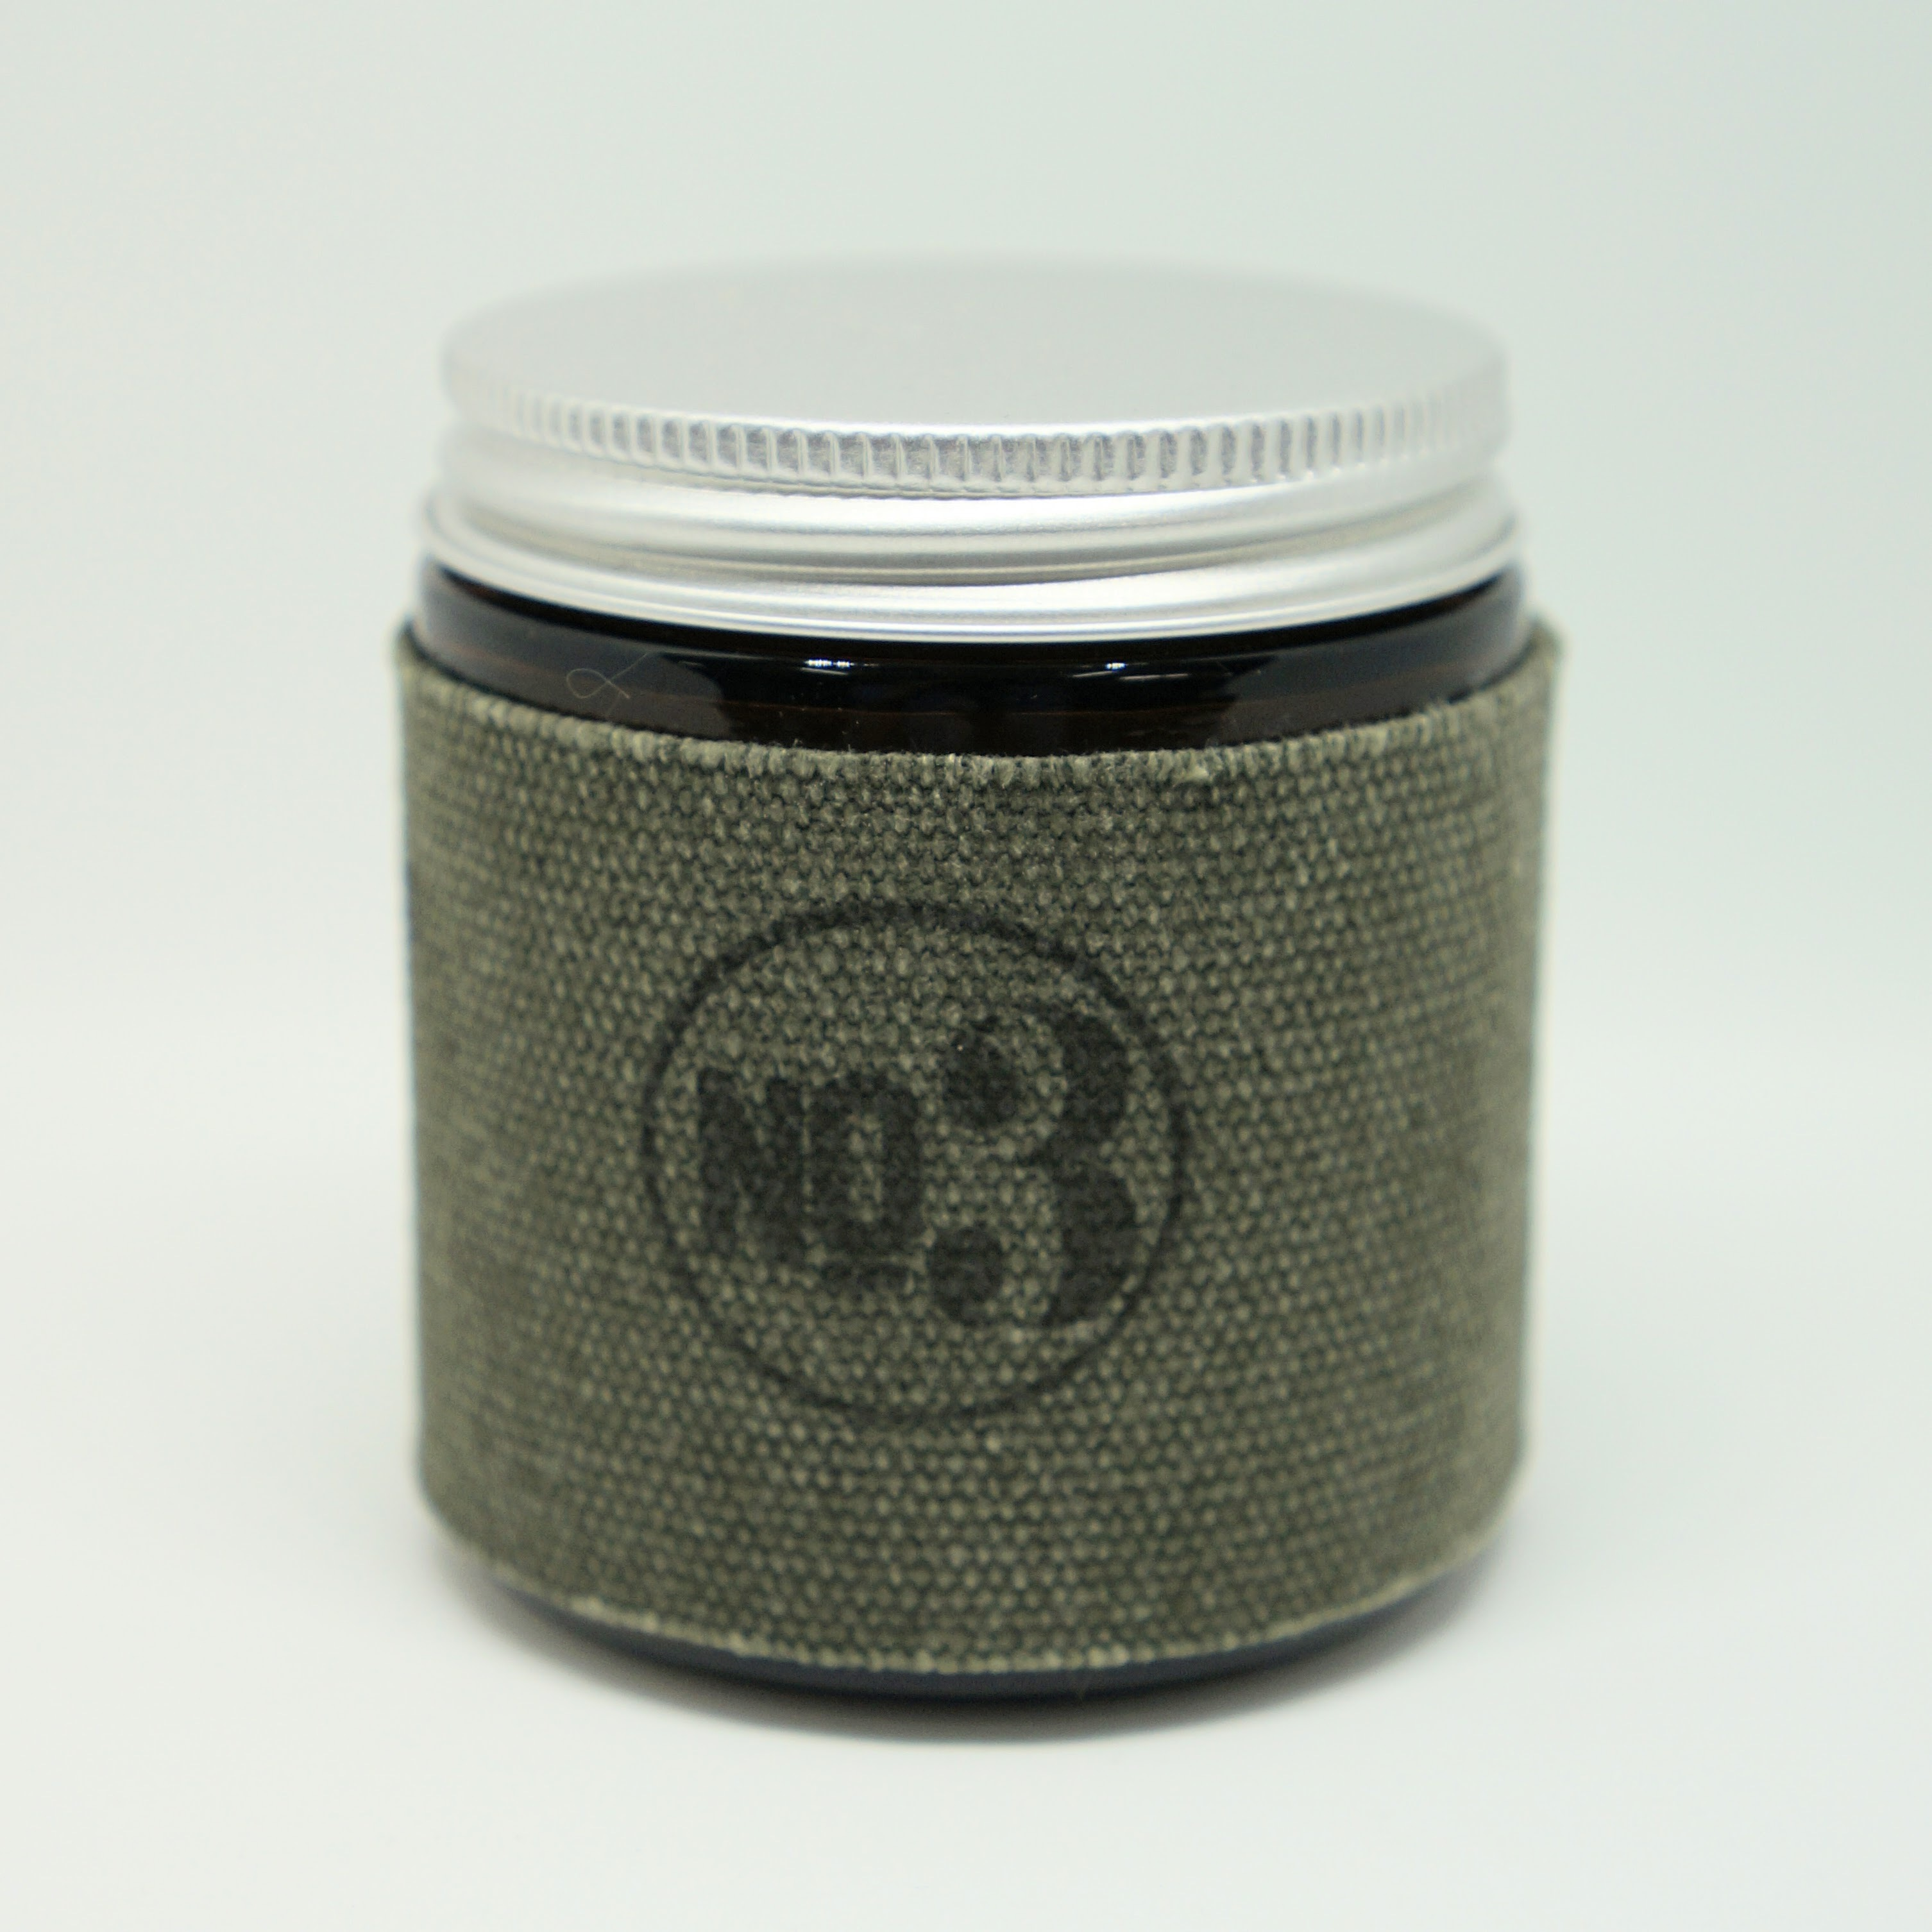 9oz Amber Jar Candle -JASMINE AND SEA SALT- キャンドル Candles - 画像2